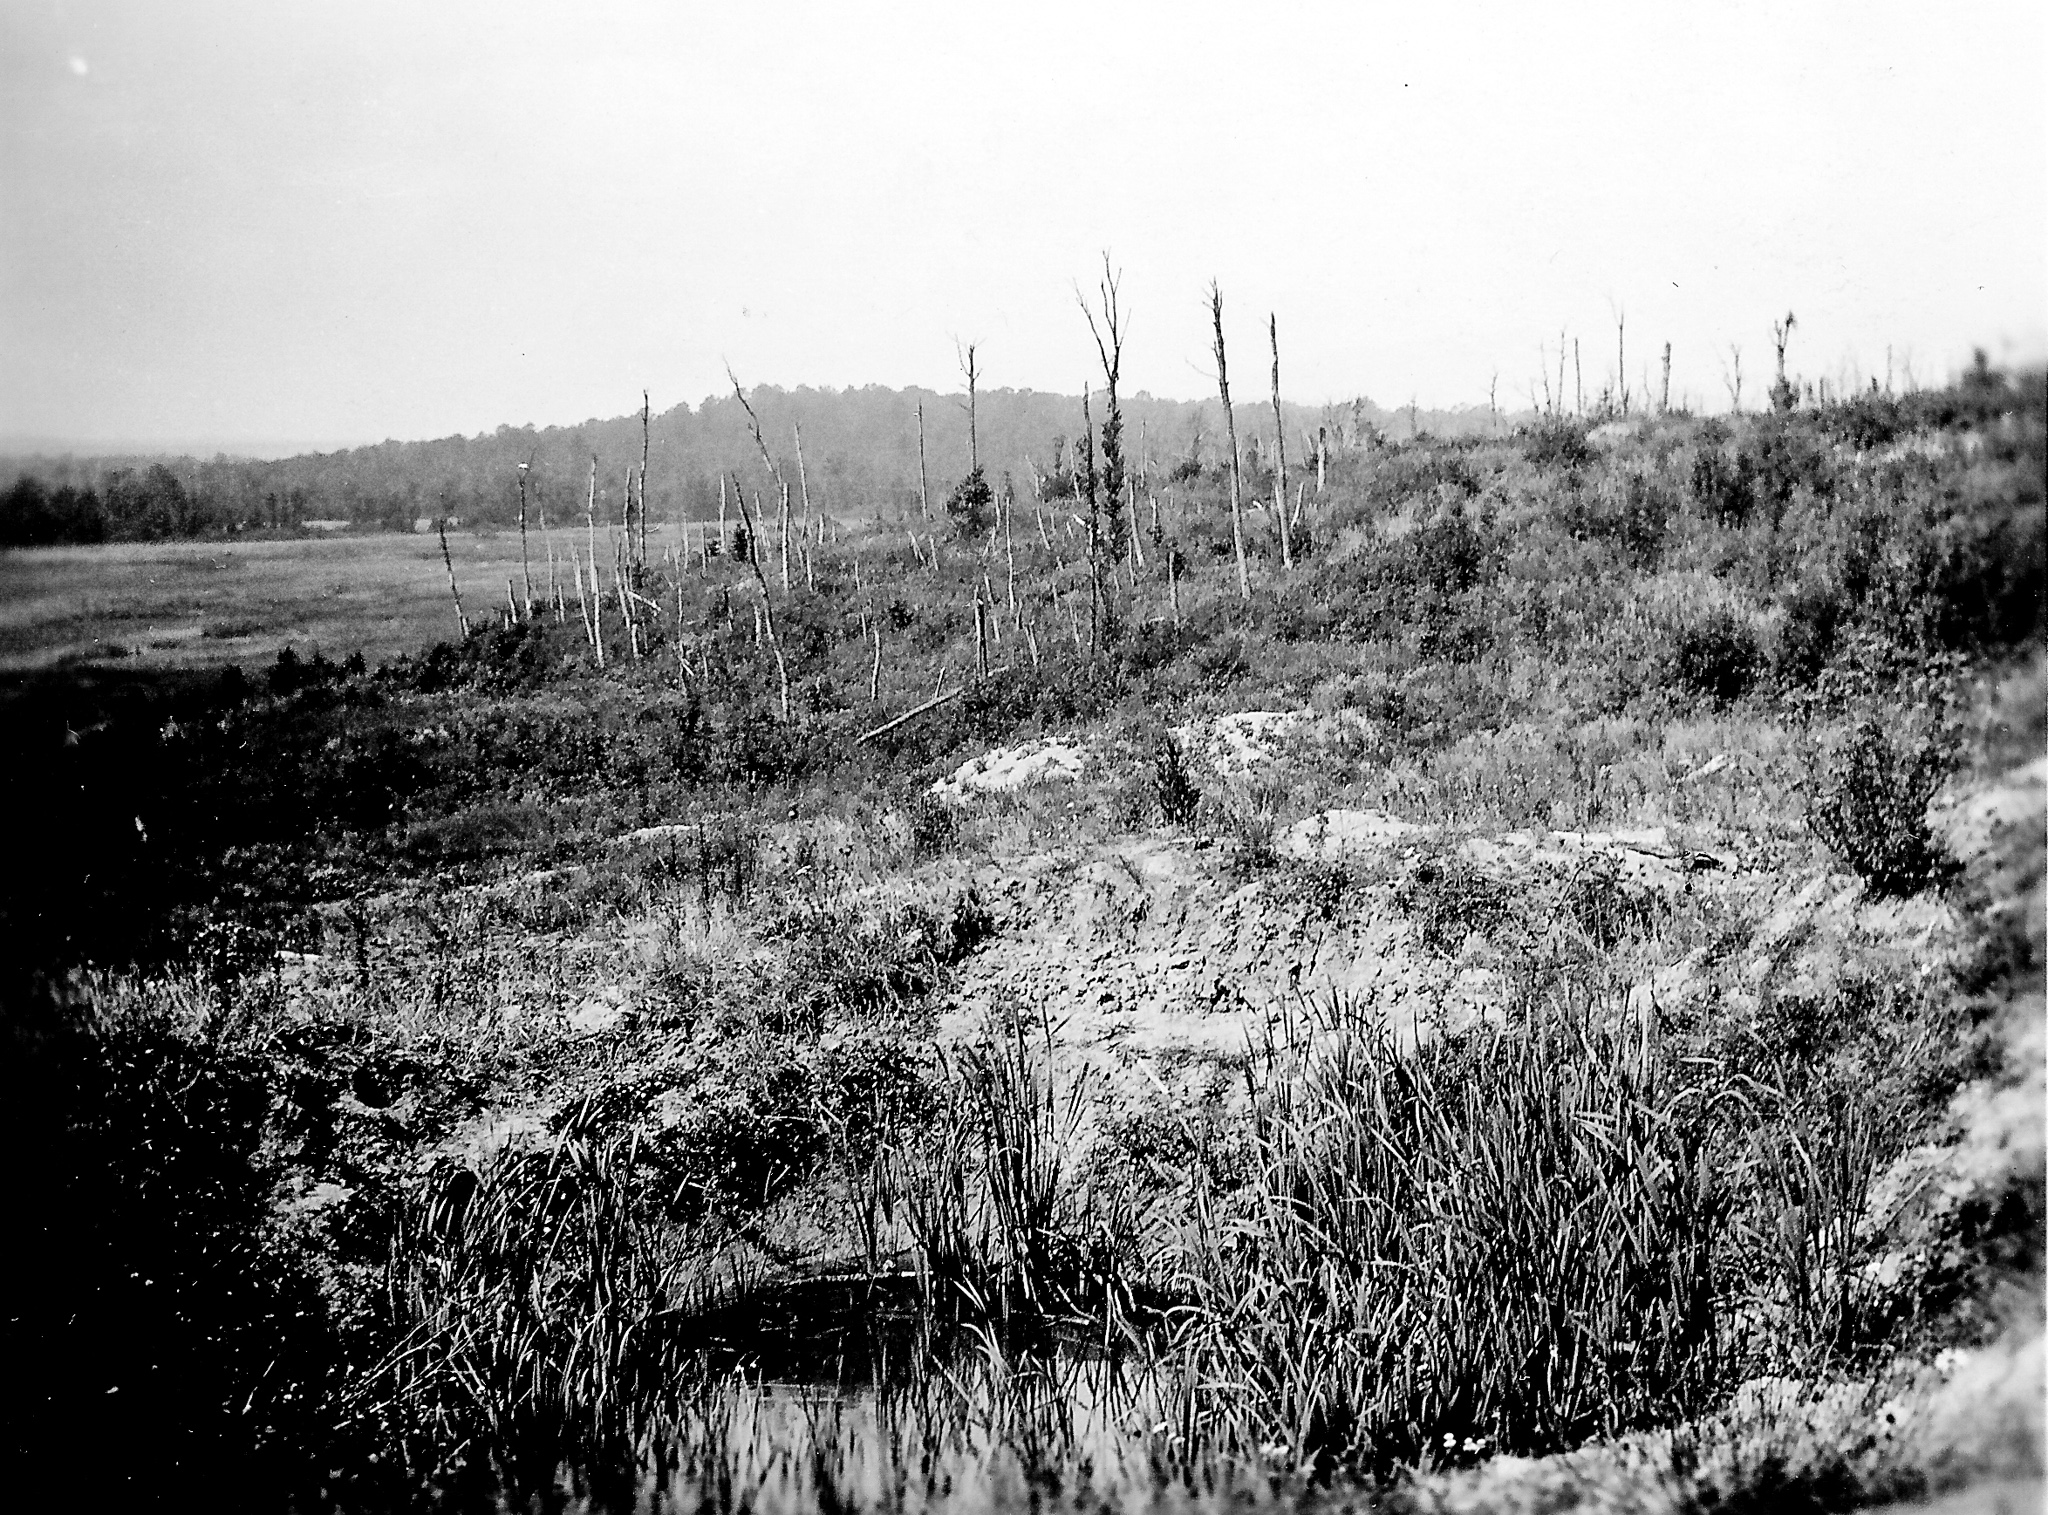 black and white photo of a parched field